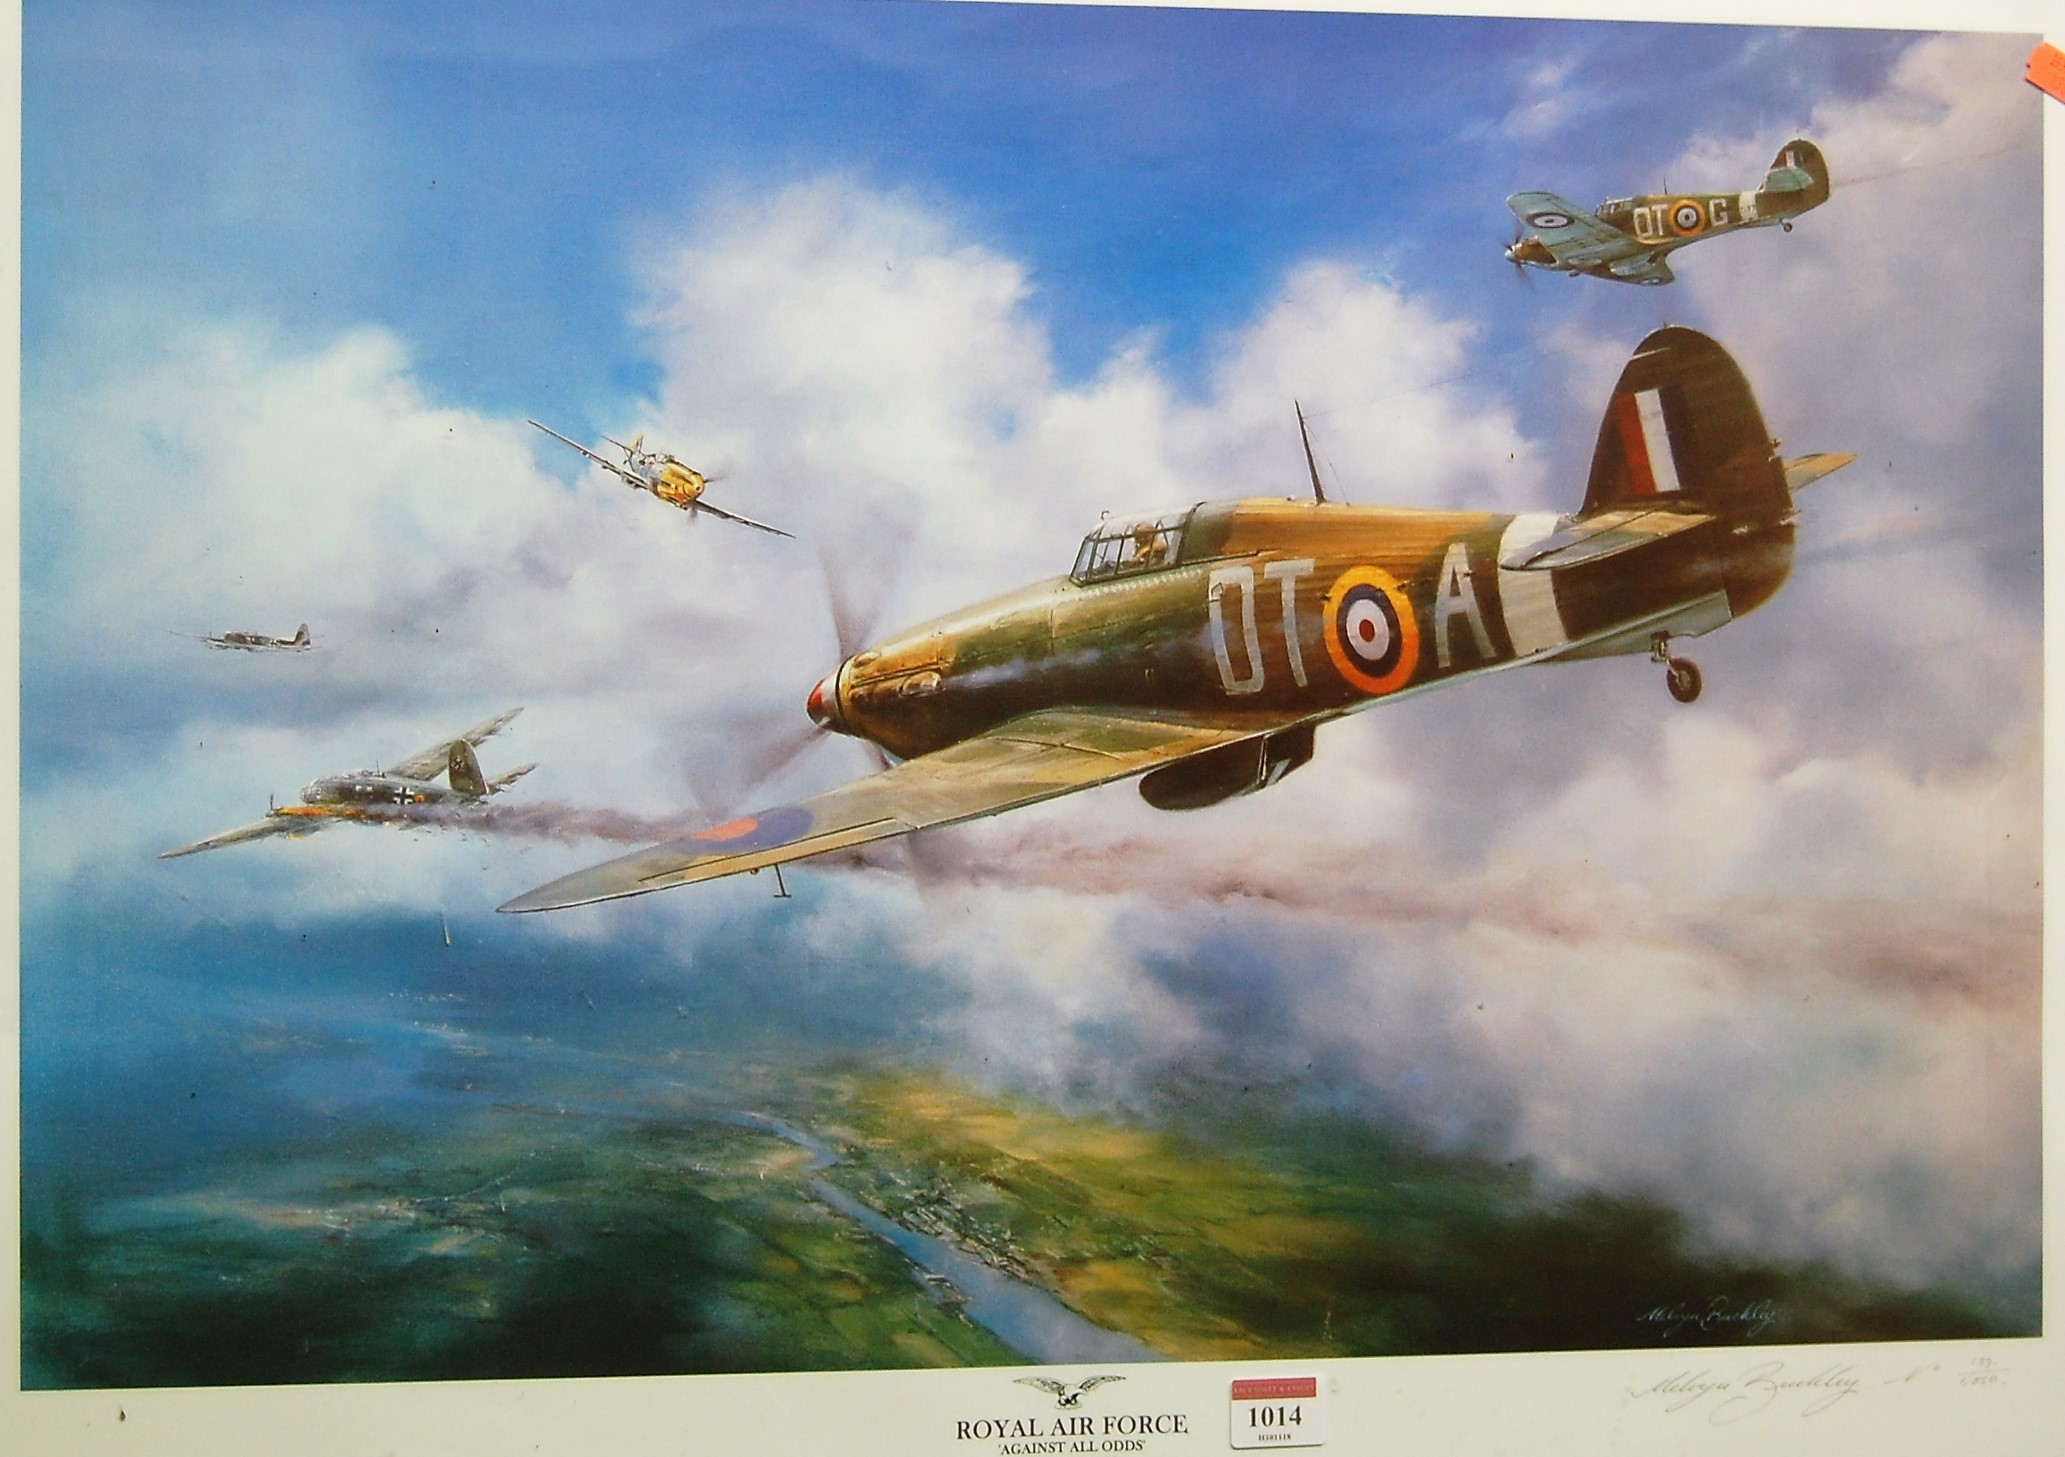 Lot 1014 - Melvin Buckley - Royal Air Force 'Against all Odds', lithograph, signed and numbered in pencil to